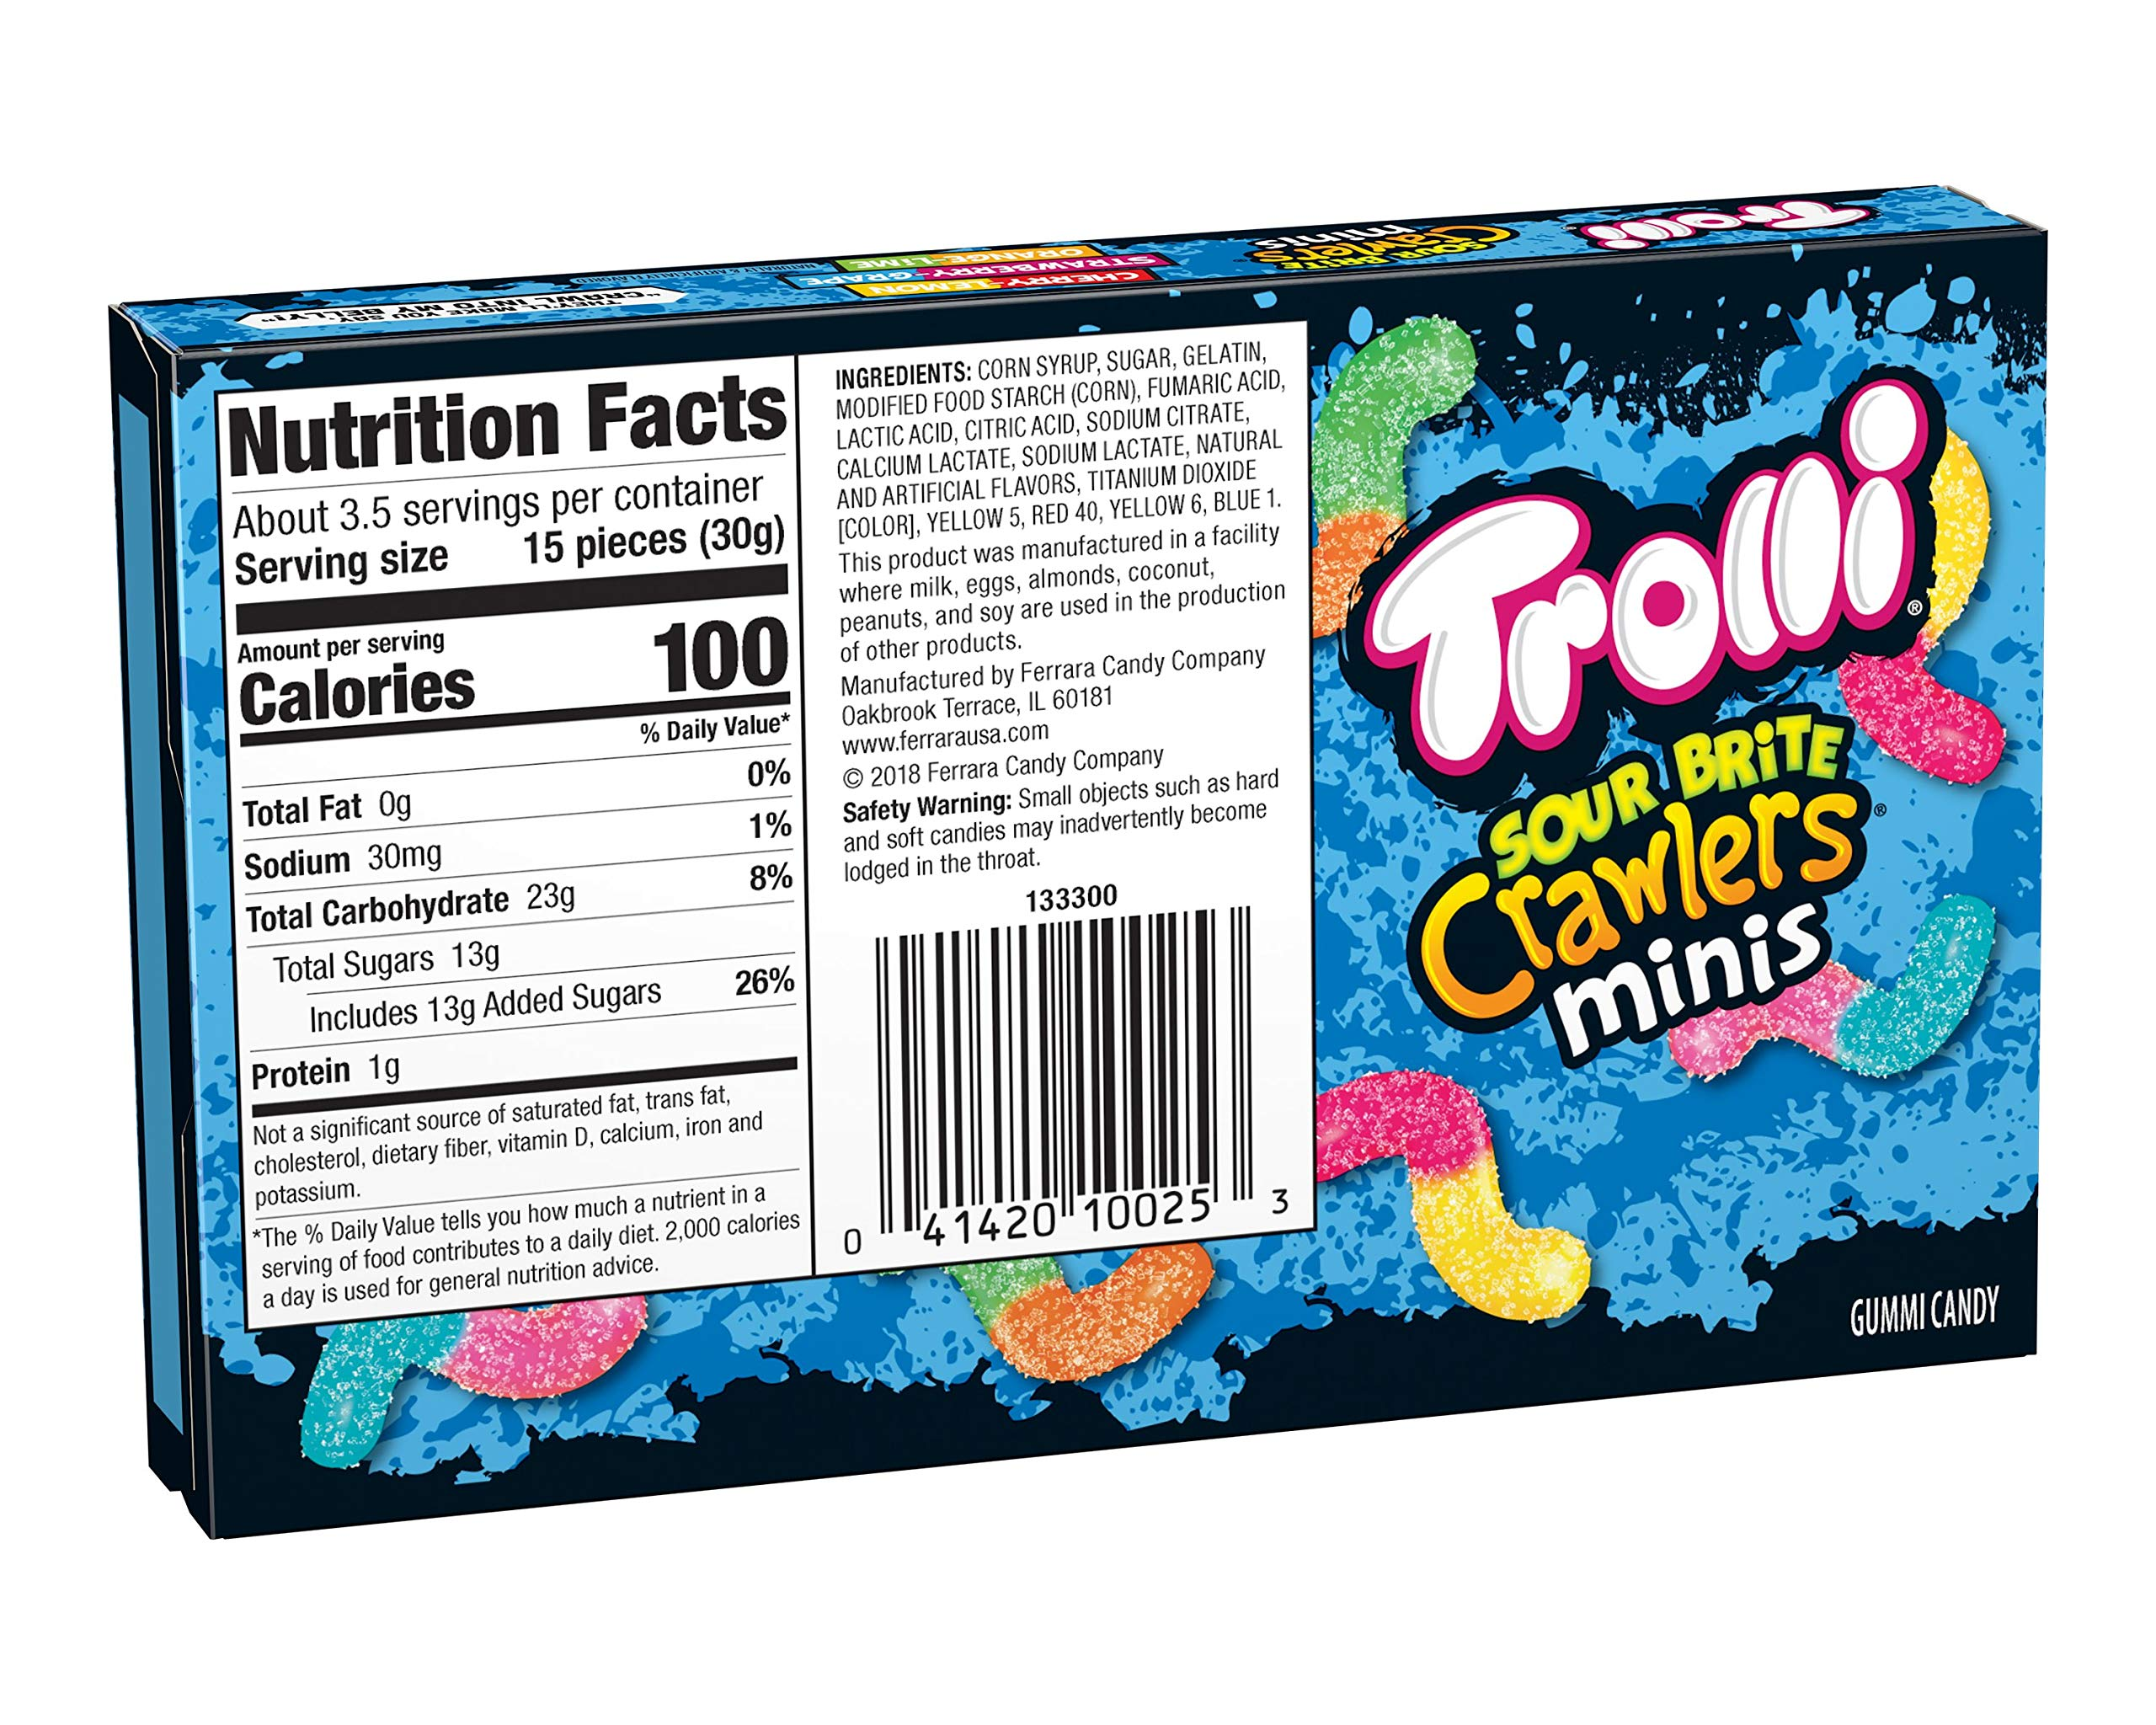 Trolli Sour Brite Crawlers Gummy Worms, 3.5 Ounce Theatre Box (Pack of 12) Sour Gummy Worms by Trolli (Image #4)